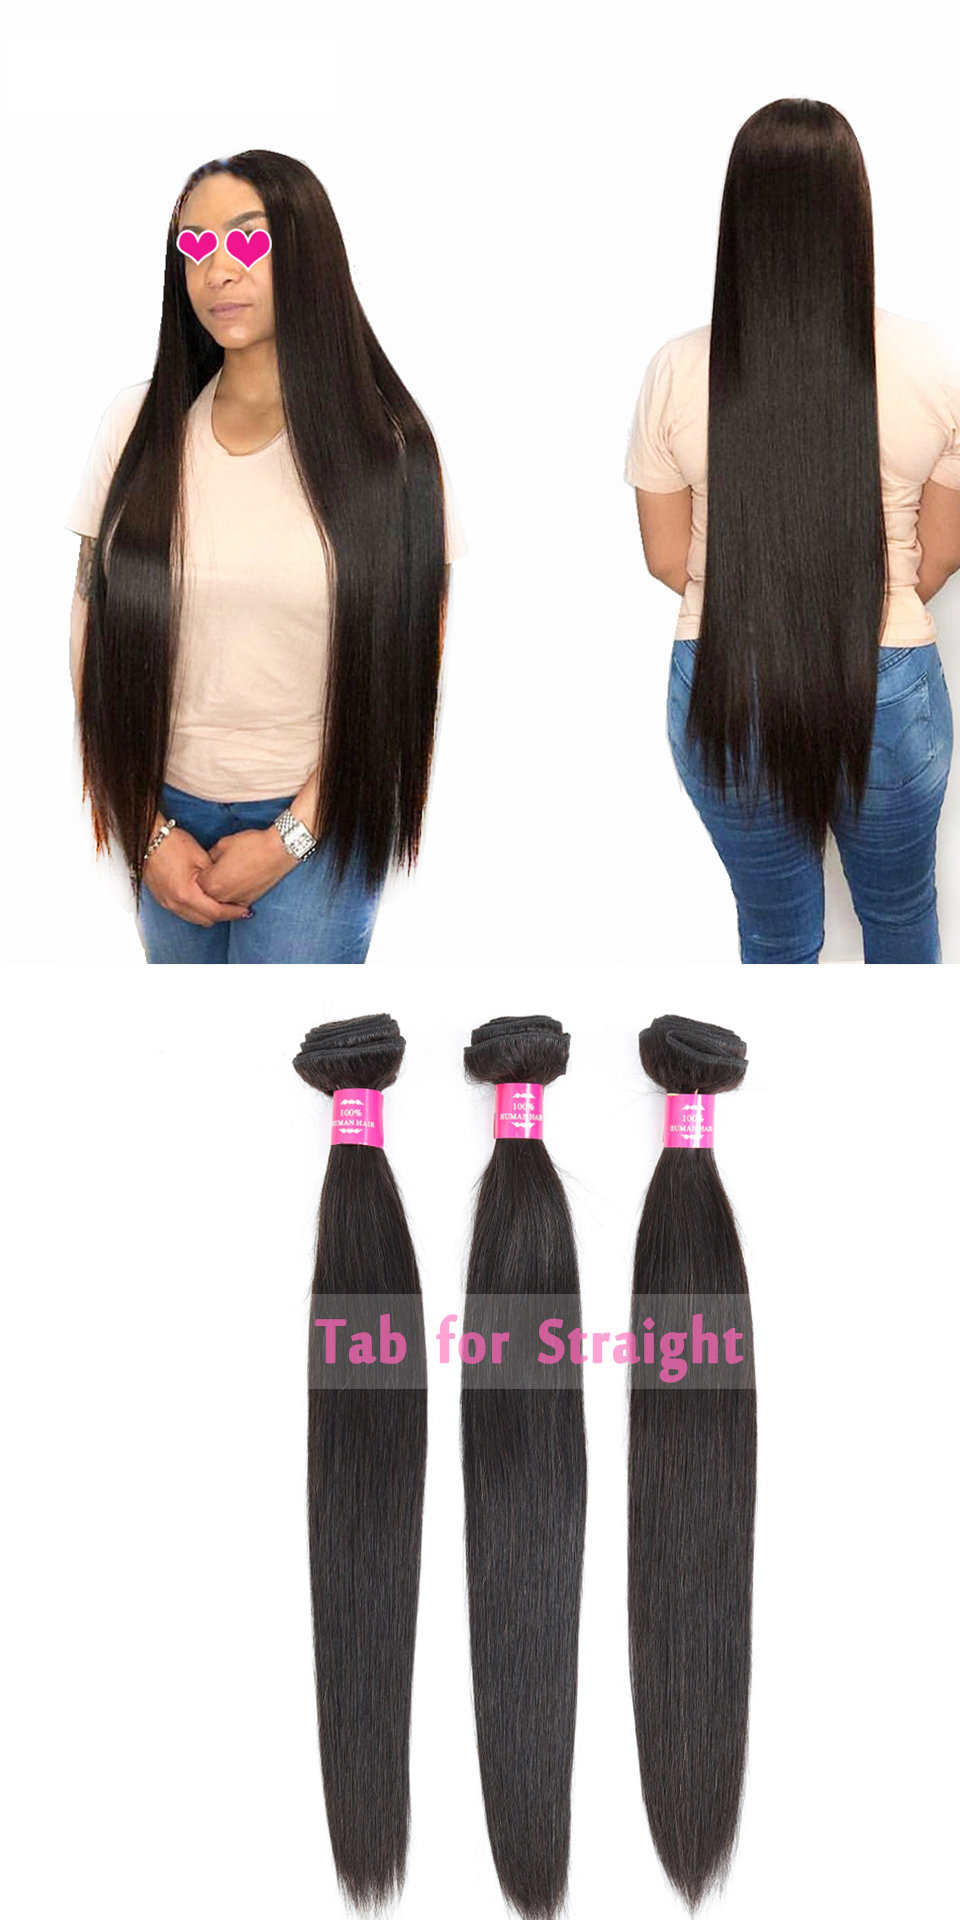 FASHOW -Hair-Products-3-4-Bundle-100-Human-Hair-Weave-Bundles-Remy-Hair-Extensions-Peruvian-Straight